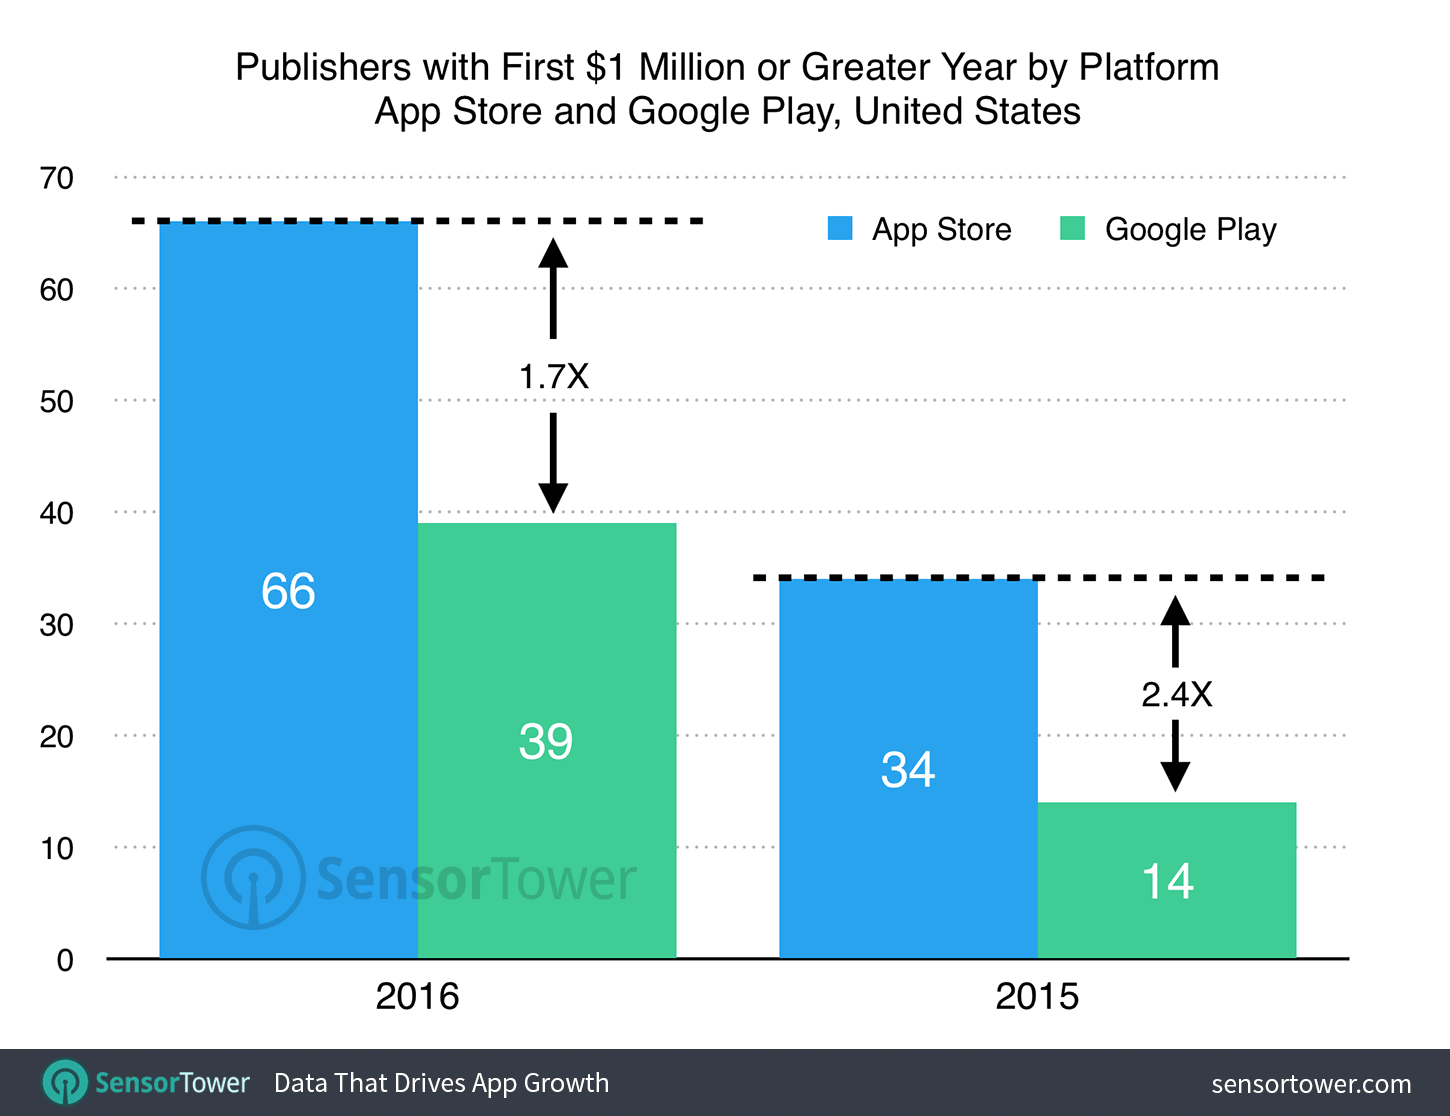 The App store twice ahead of Google Play for developers-millionaires